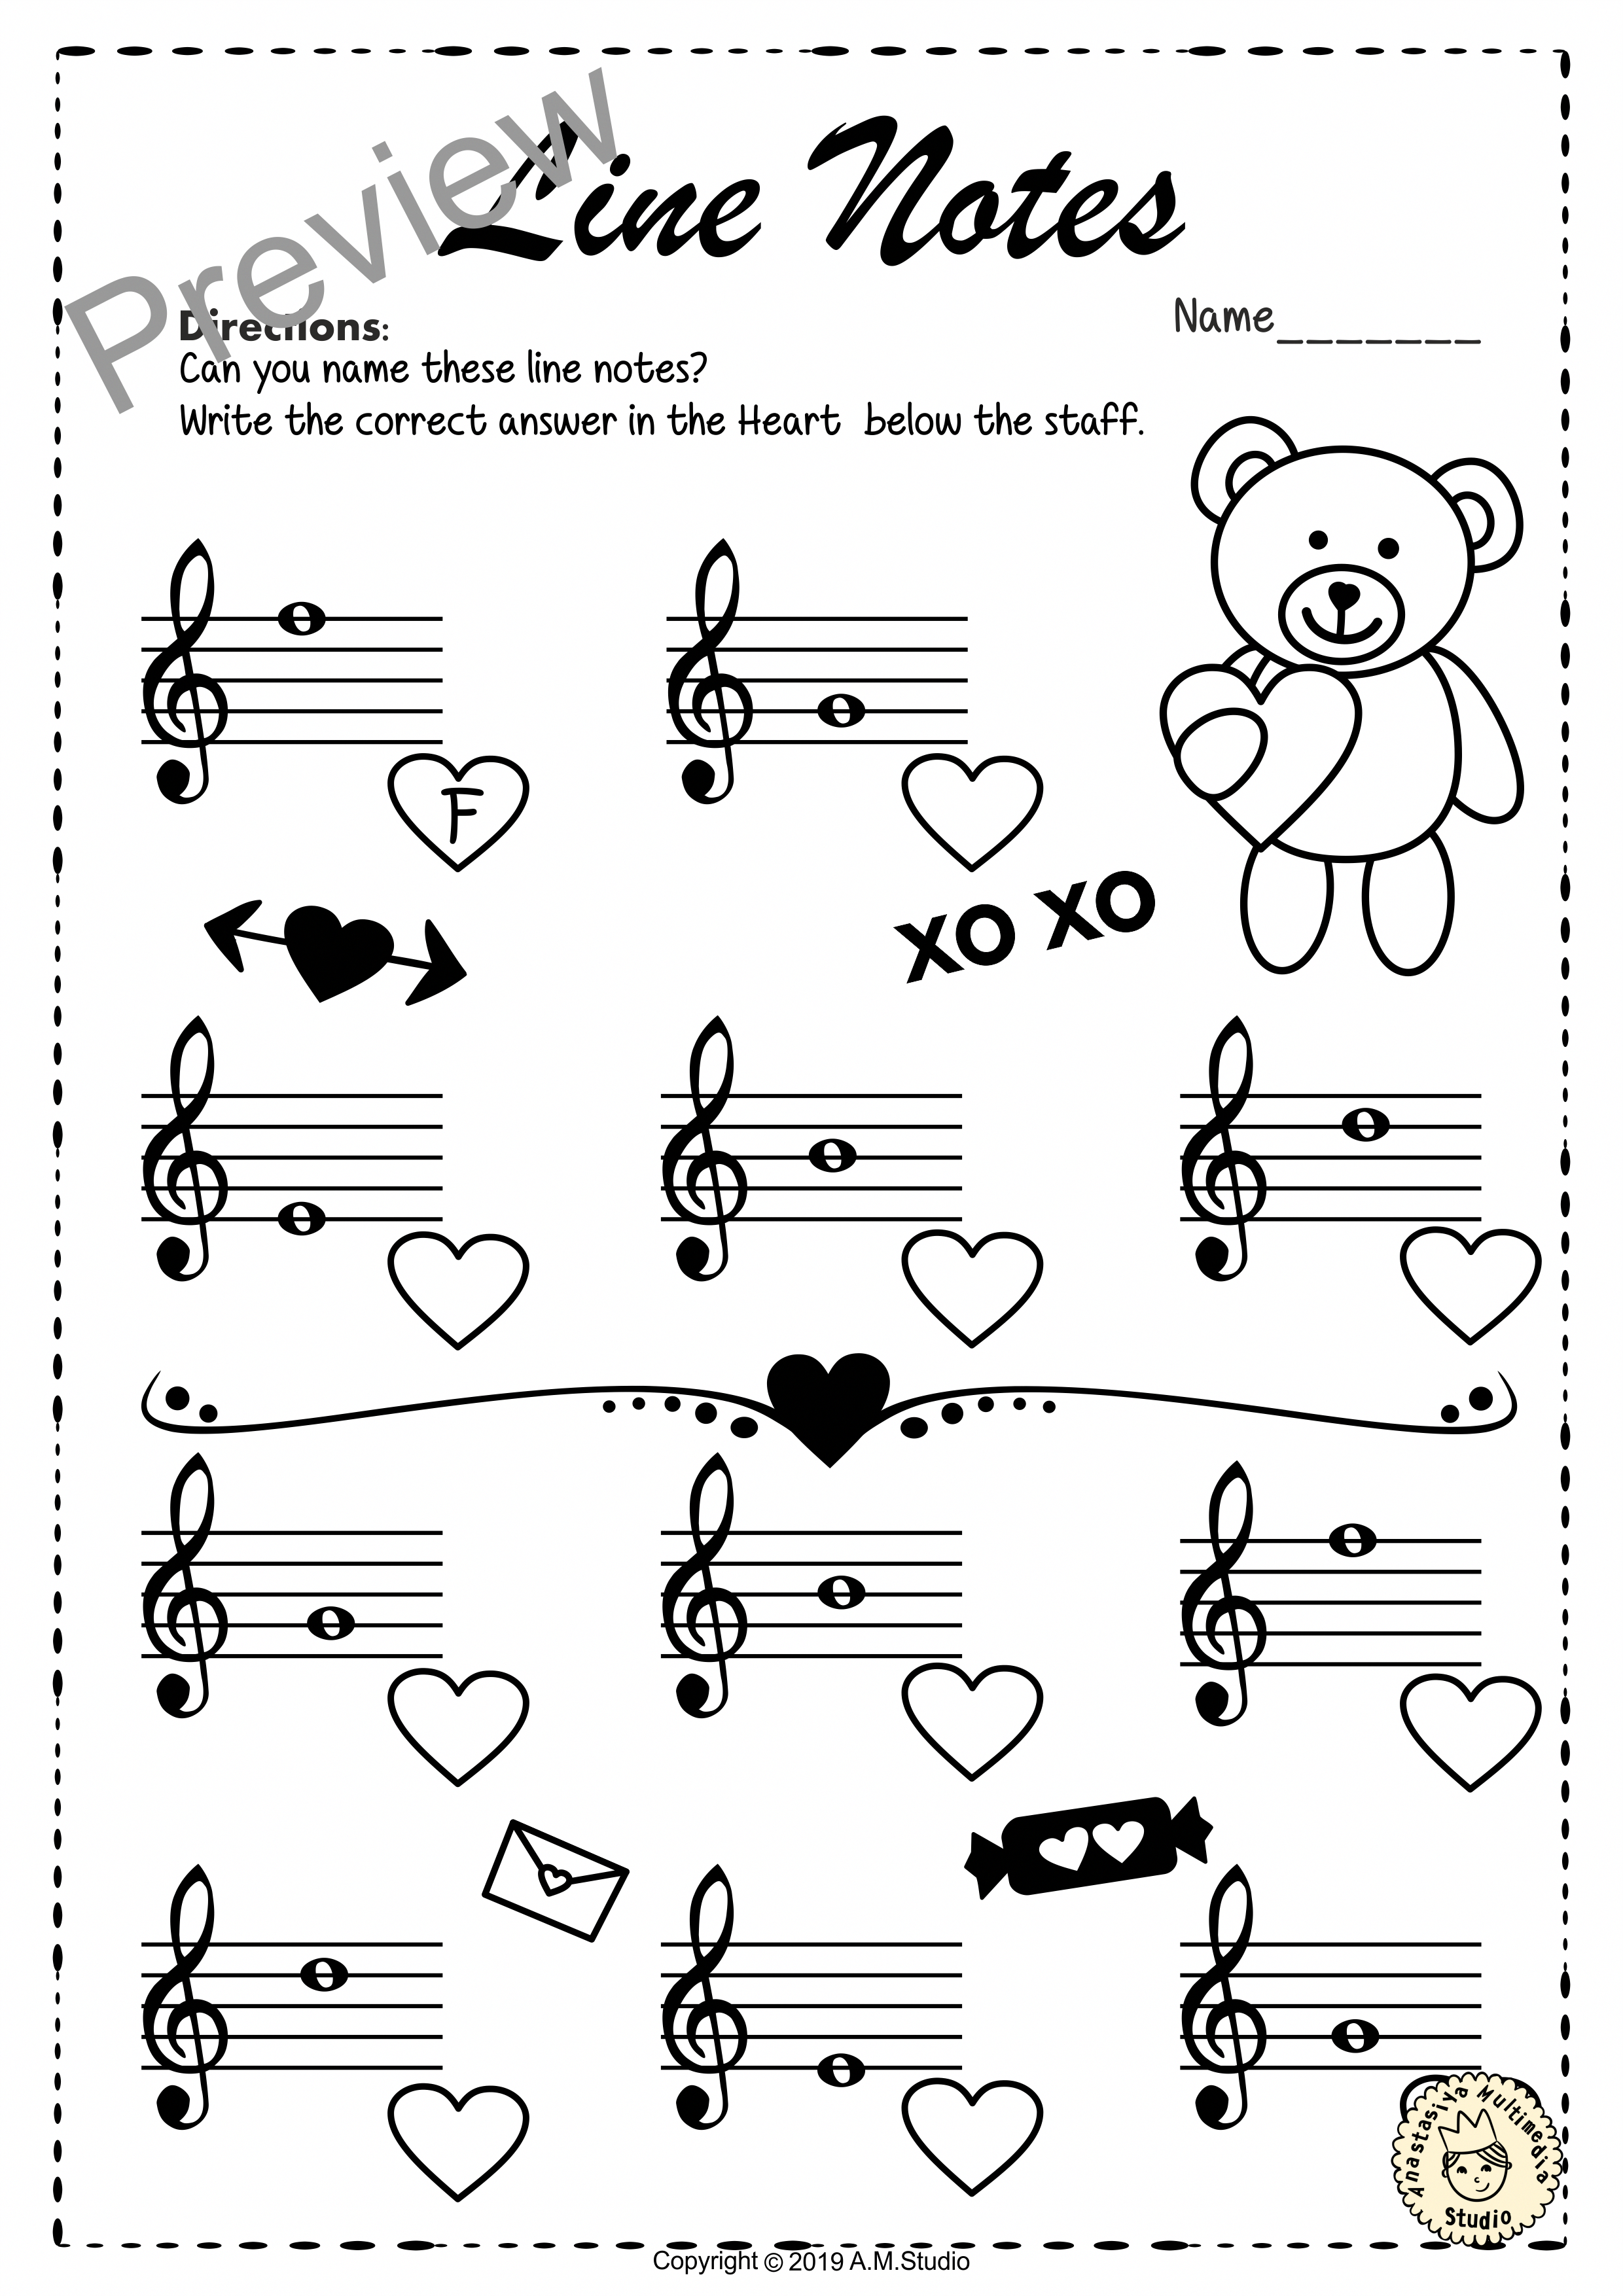 This Set Of 12 Music Worksheets Valentine S Day Themed Is Designed To Help Your Students Practice Ident Music Lessons For Kids Music Lesson Plans Piano Lessons [ 3509 x 2480 Pixel ]